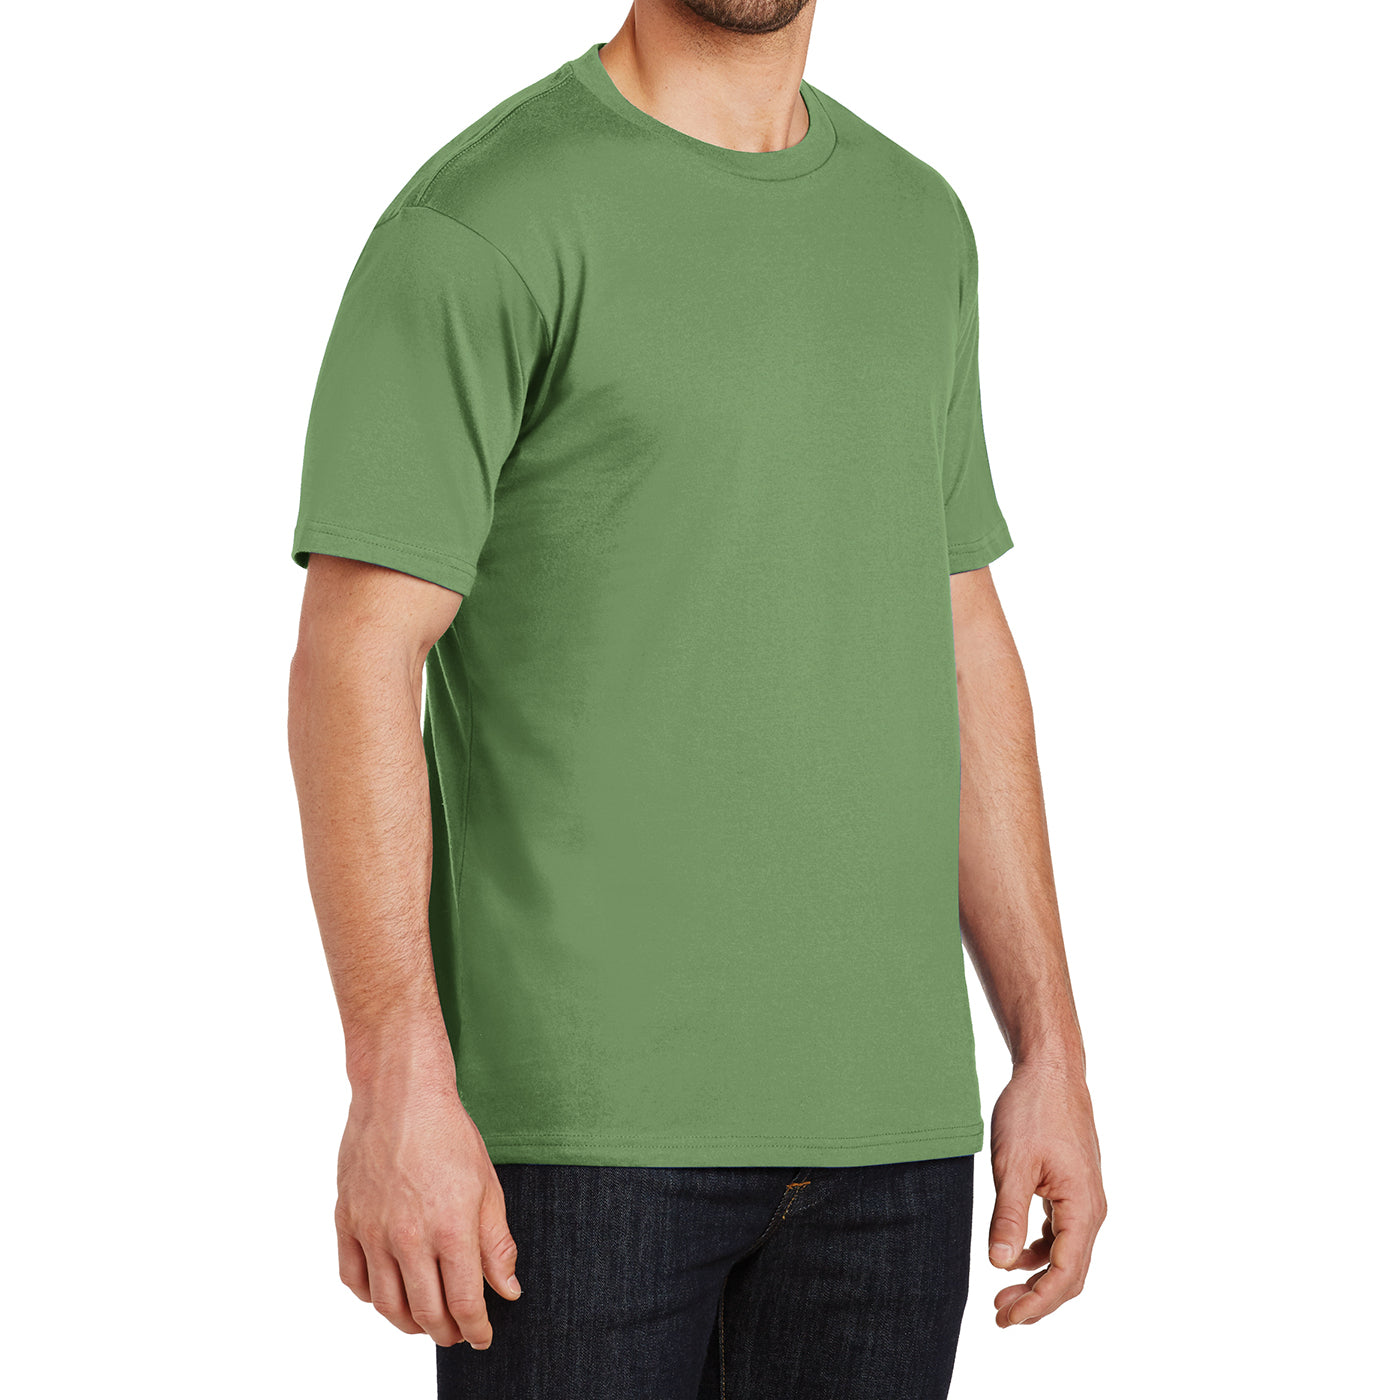 Mens Perfect Weight Crew Tee - Fresh Fatigue - Side